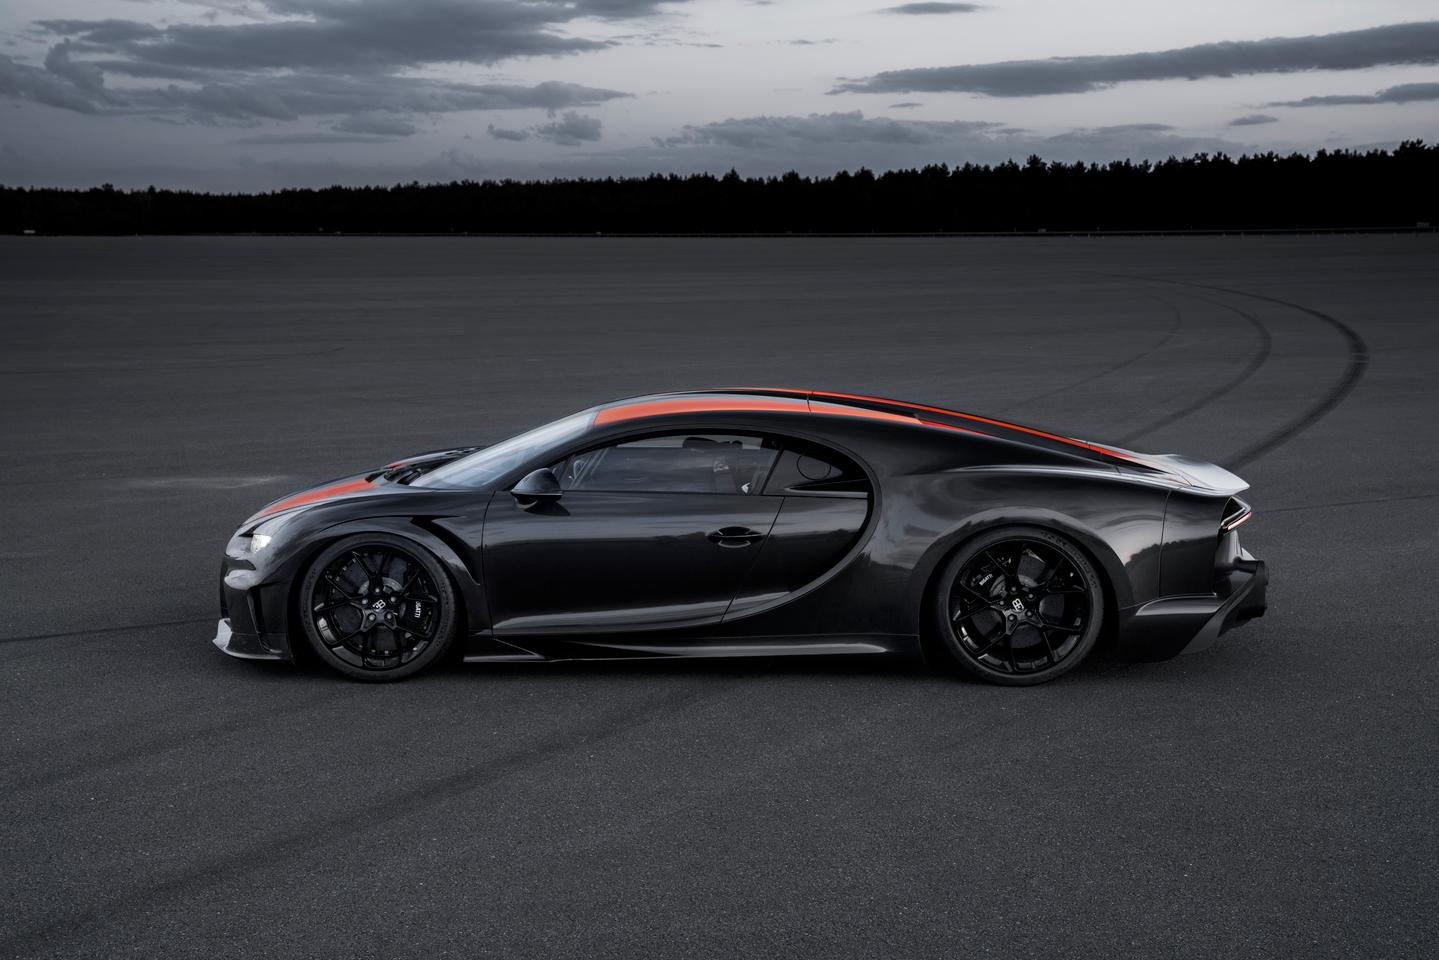 Bugatti Chiron surpasses 300 mph barrier with a speed of 304.773 mph (490.484 km/h)